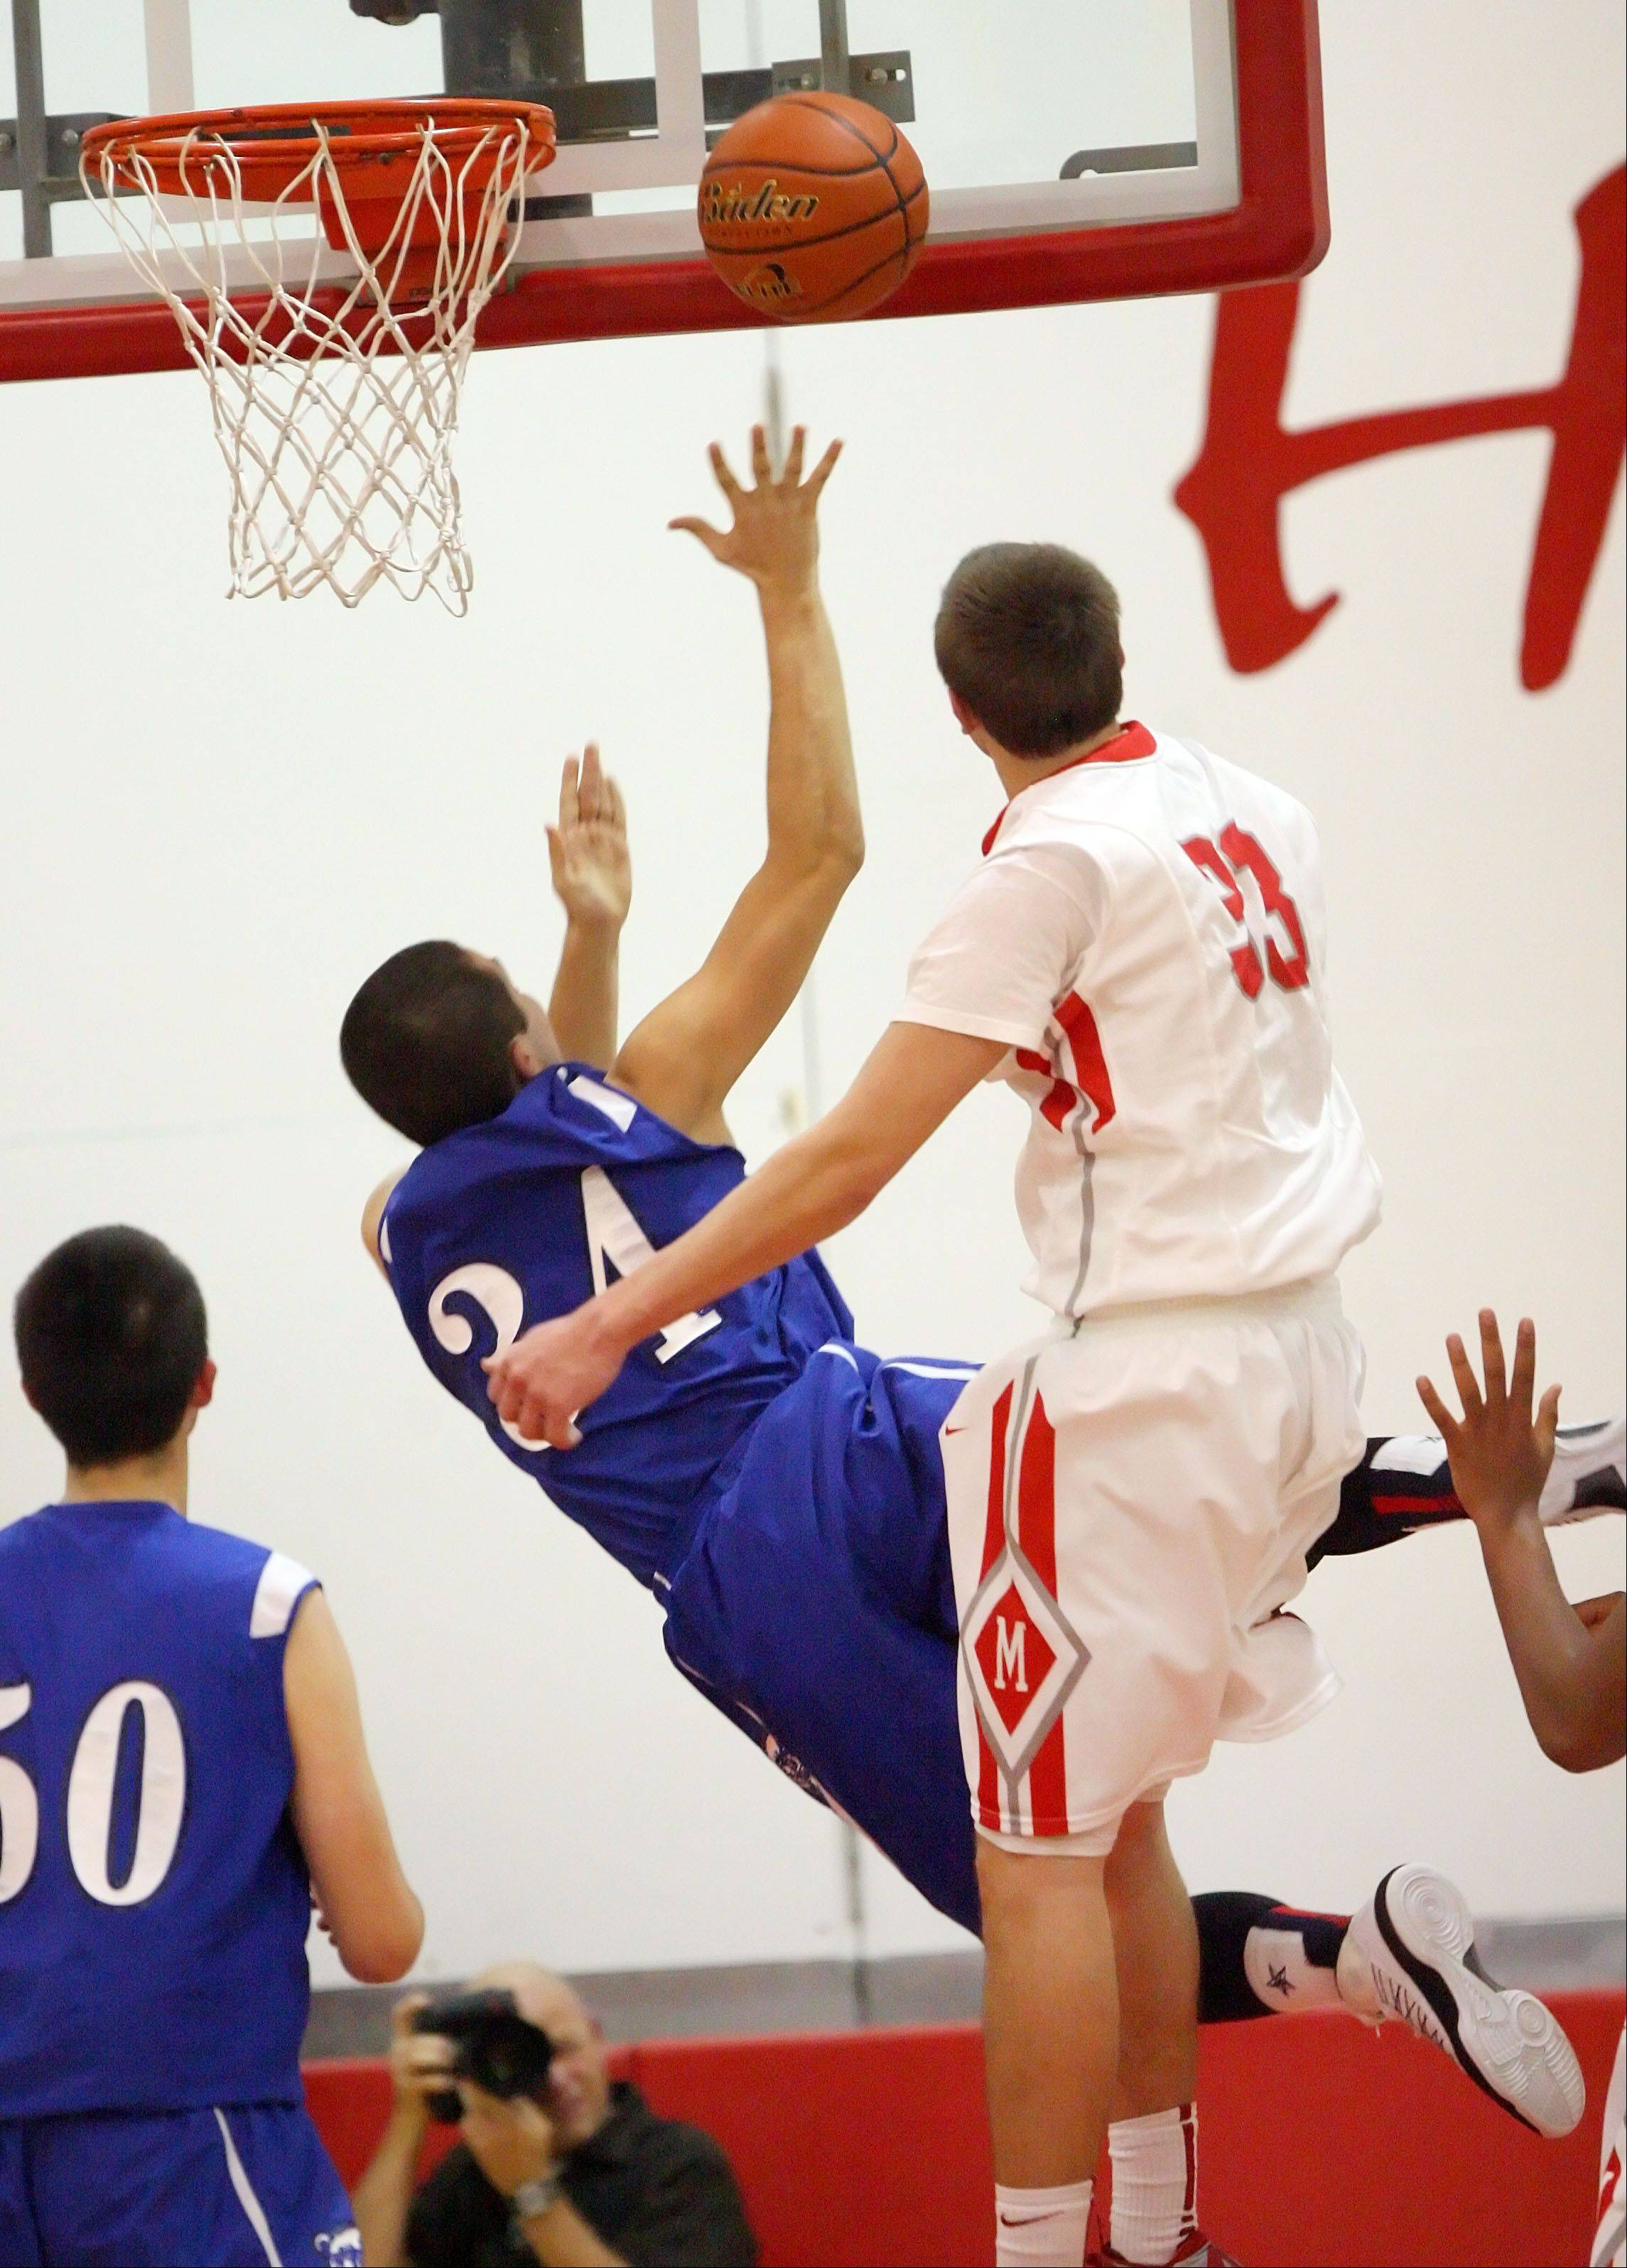 Lake Zurich's Mike Travlos, left, drives past Mundelein's Sean O'Brien.